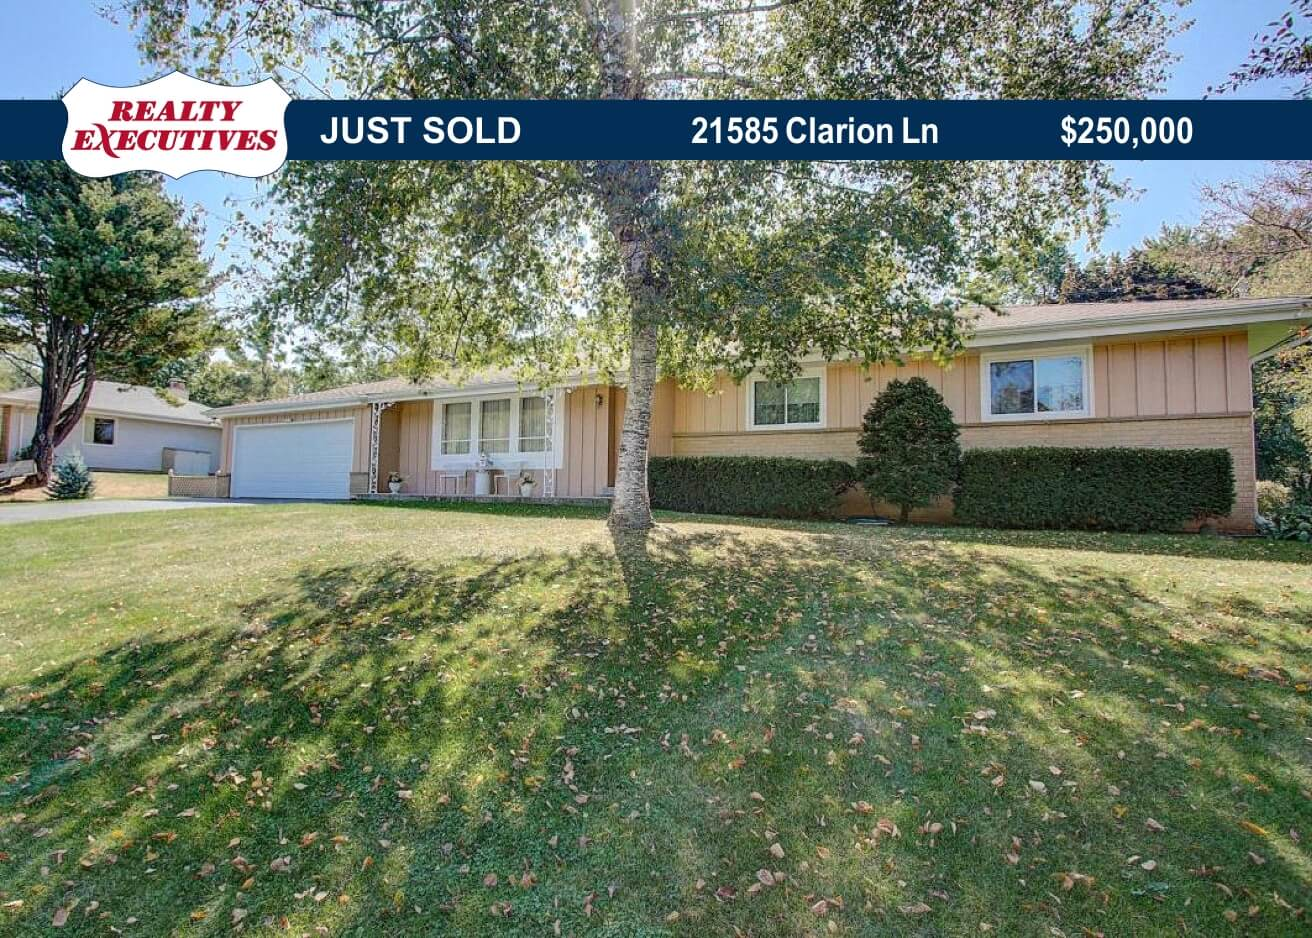 21585 Clarion Ln~Sold